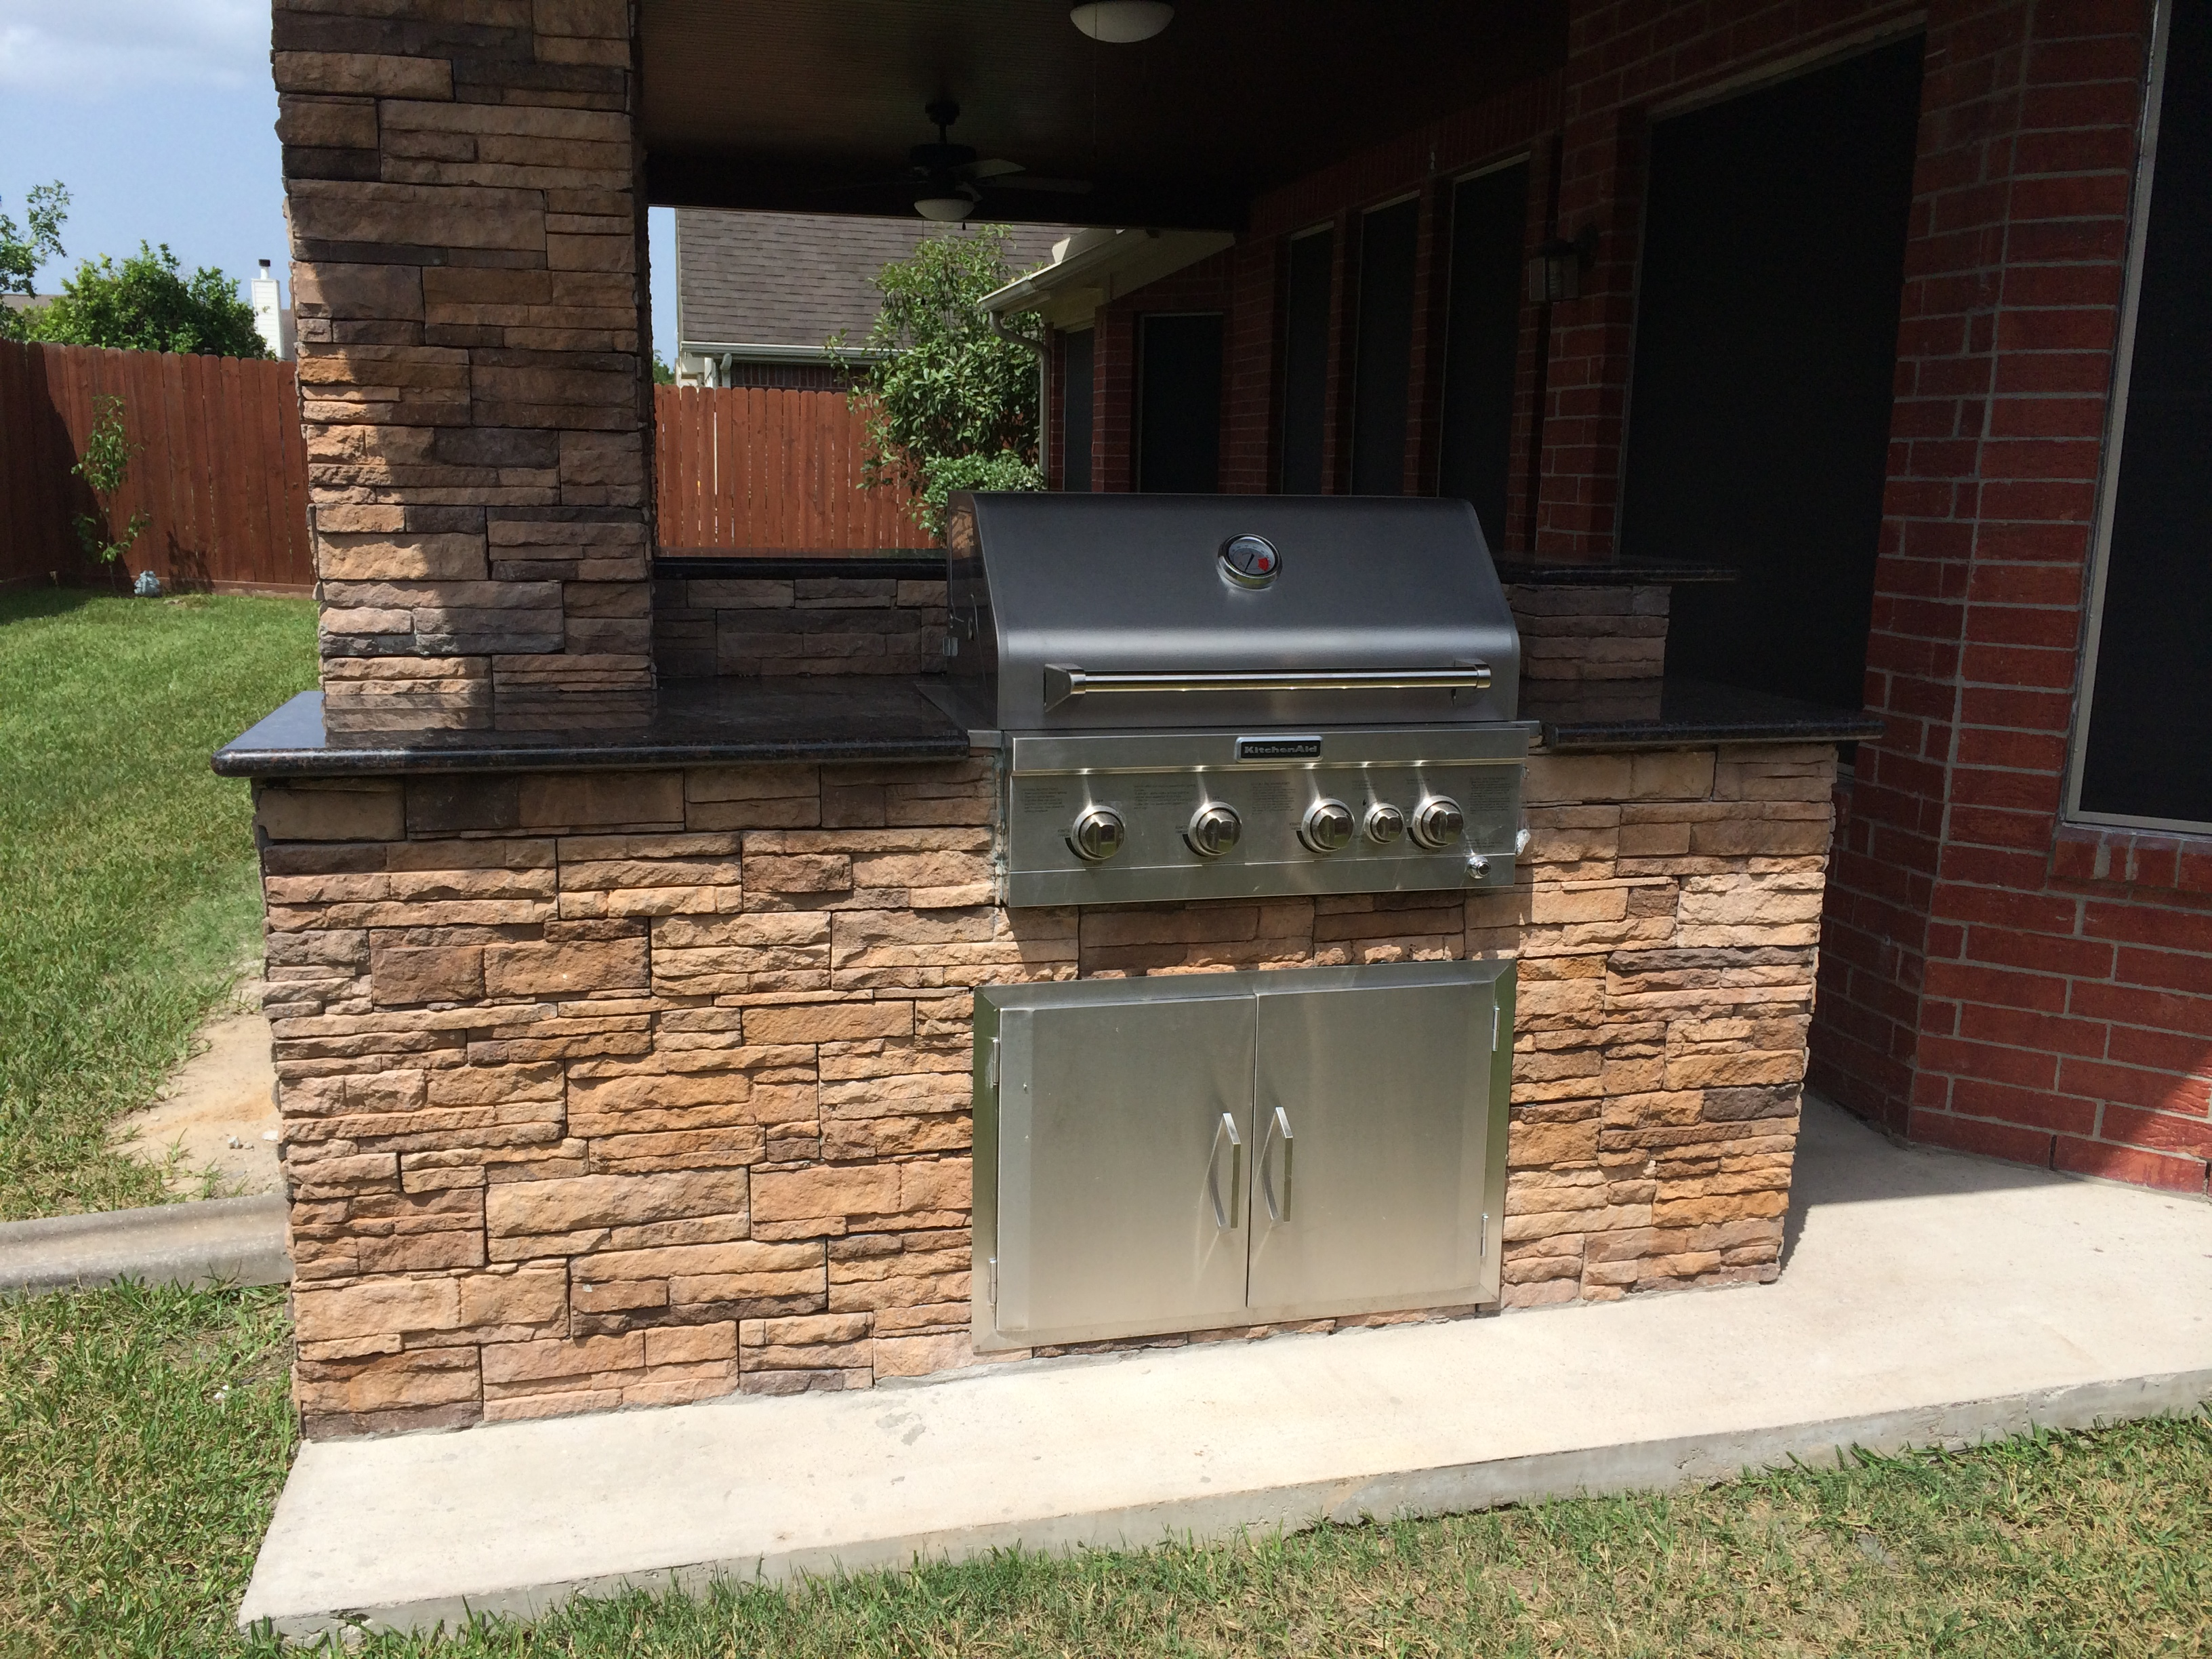 Mills Outdoor Kitchen - Complete